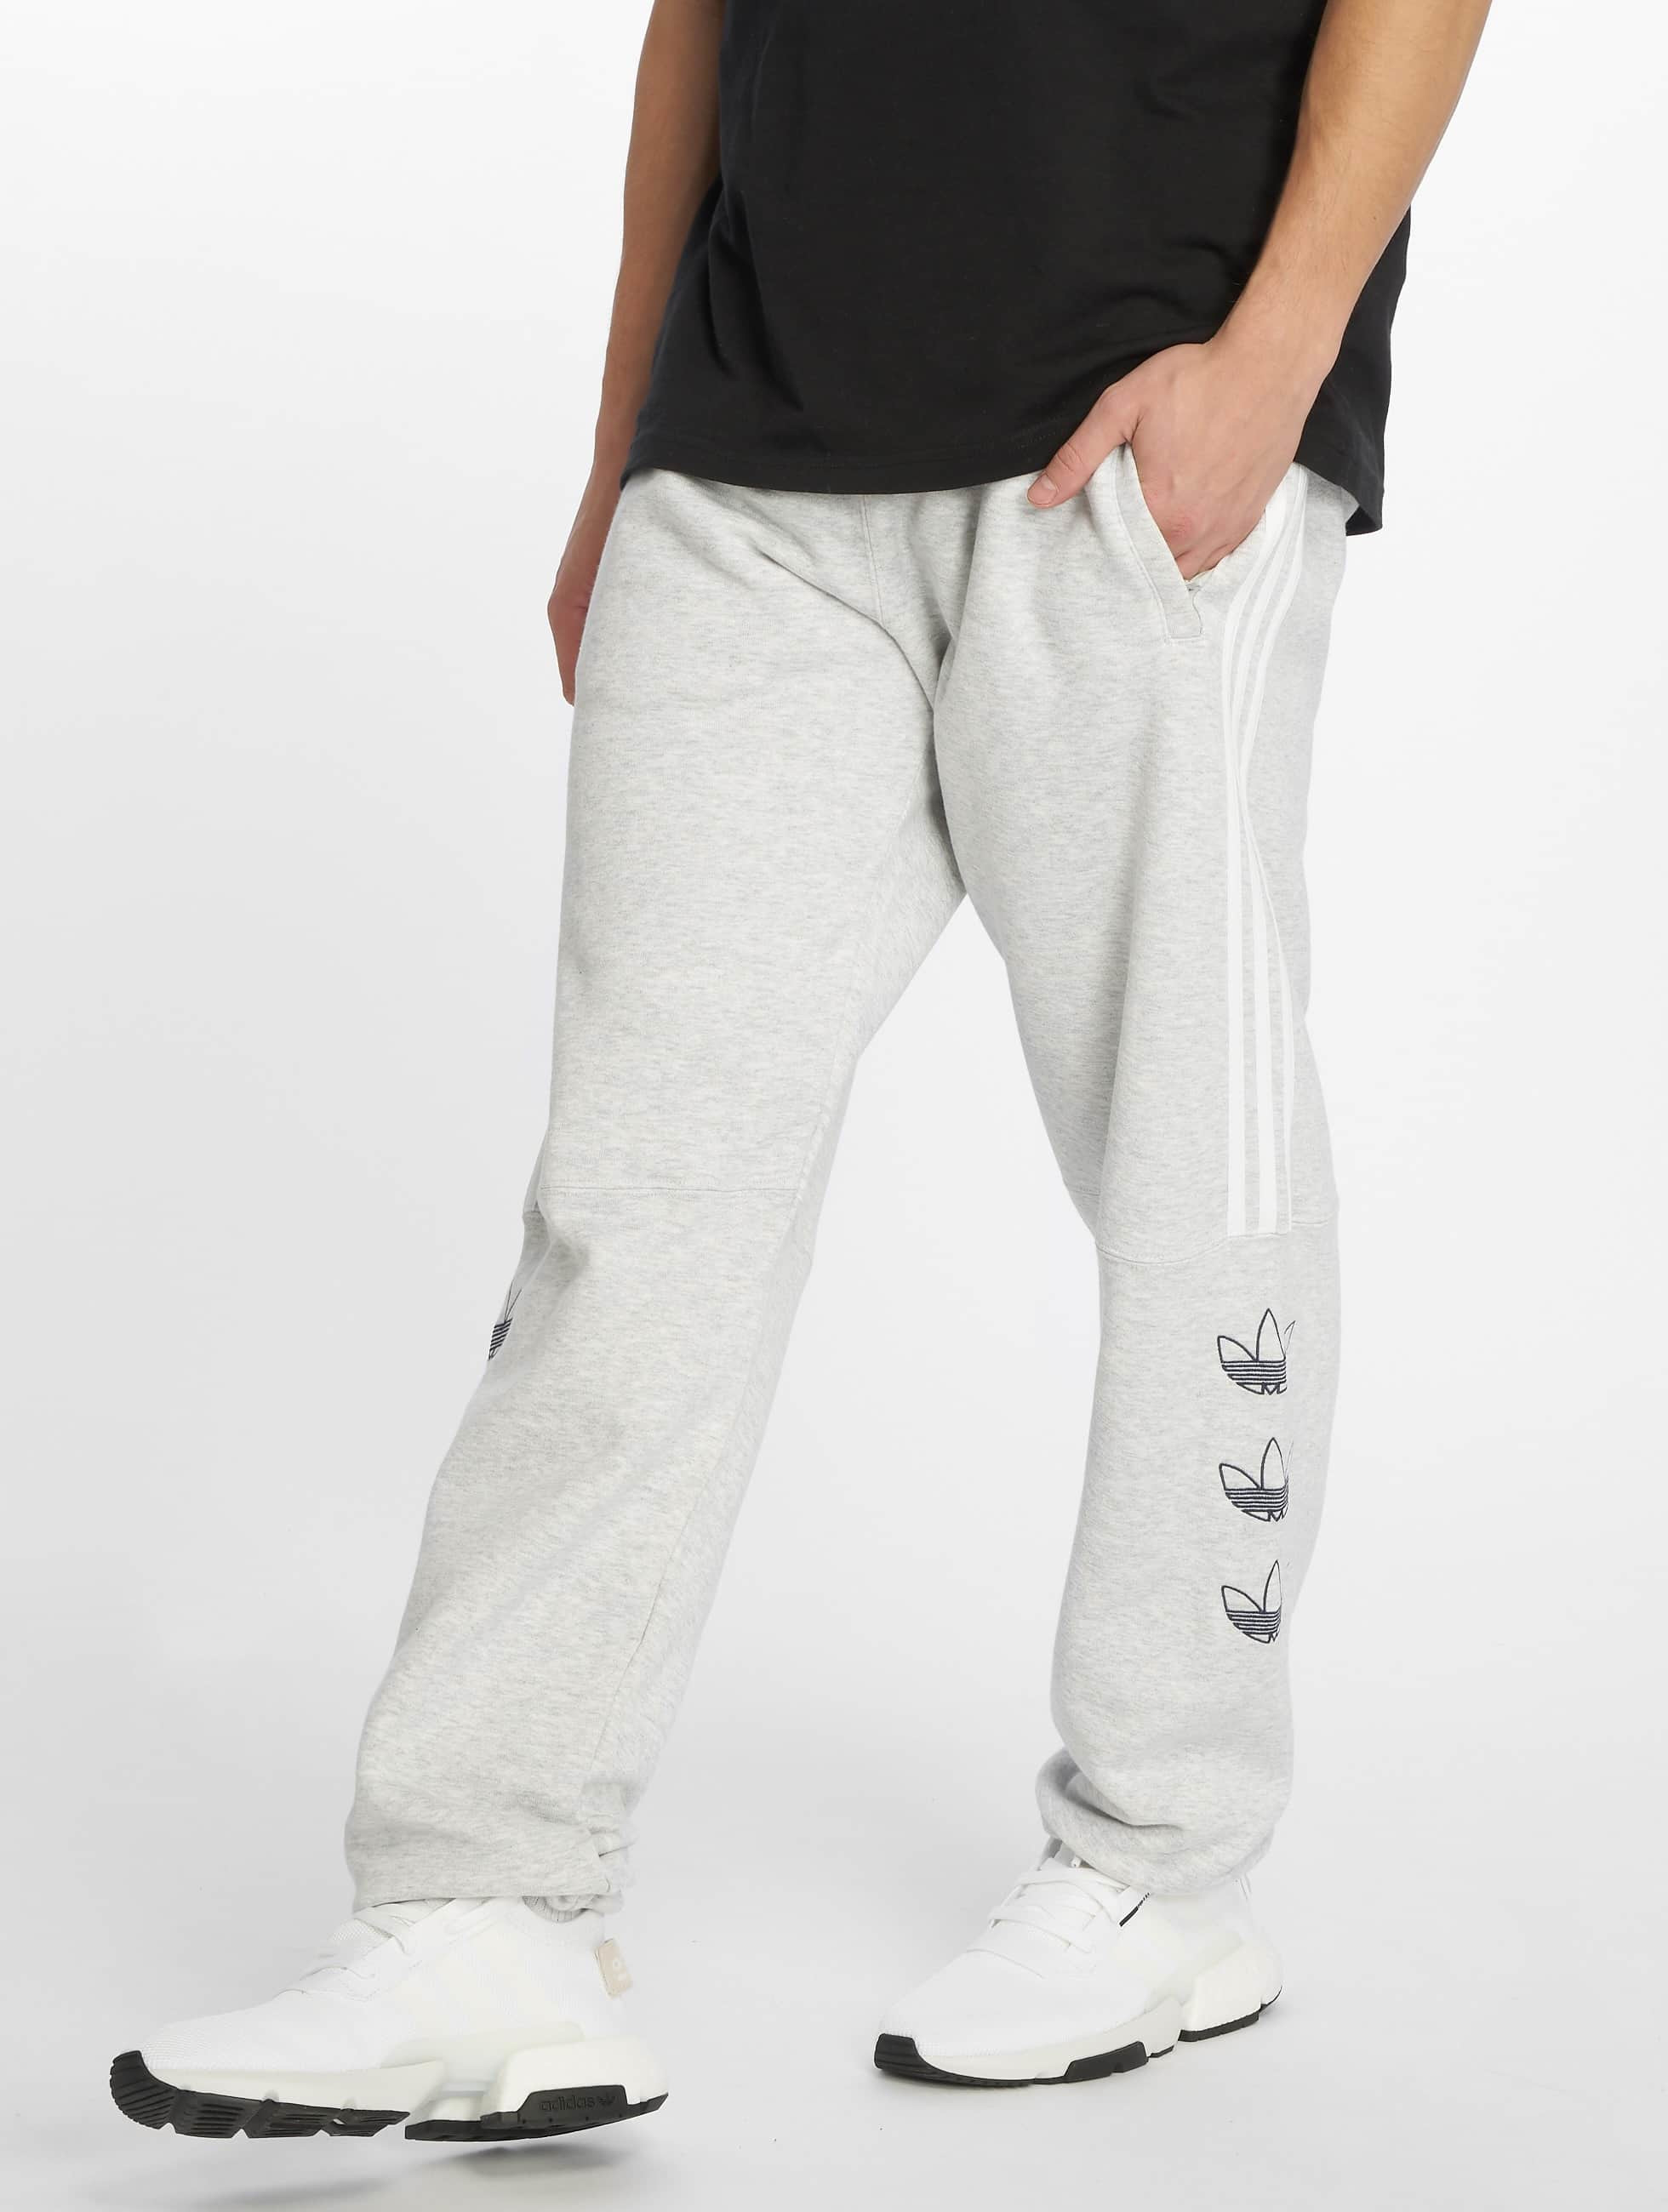 Adidas Originals Ft Sweat Pants Light Grey Heather